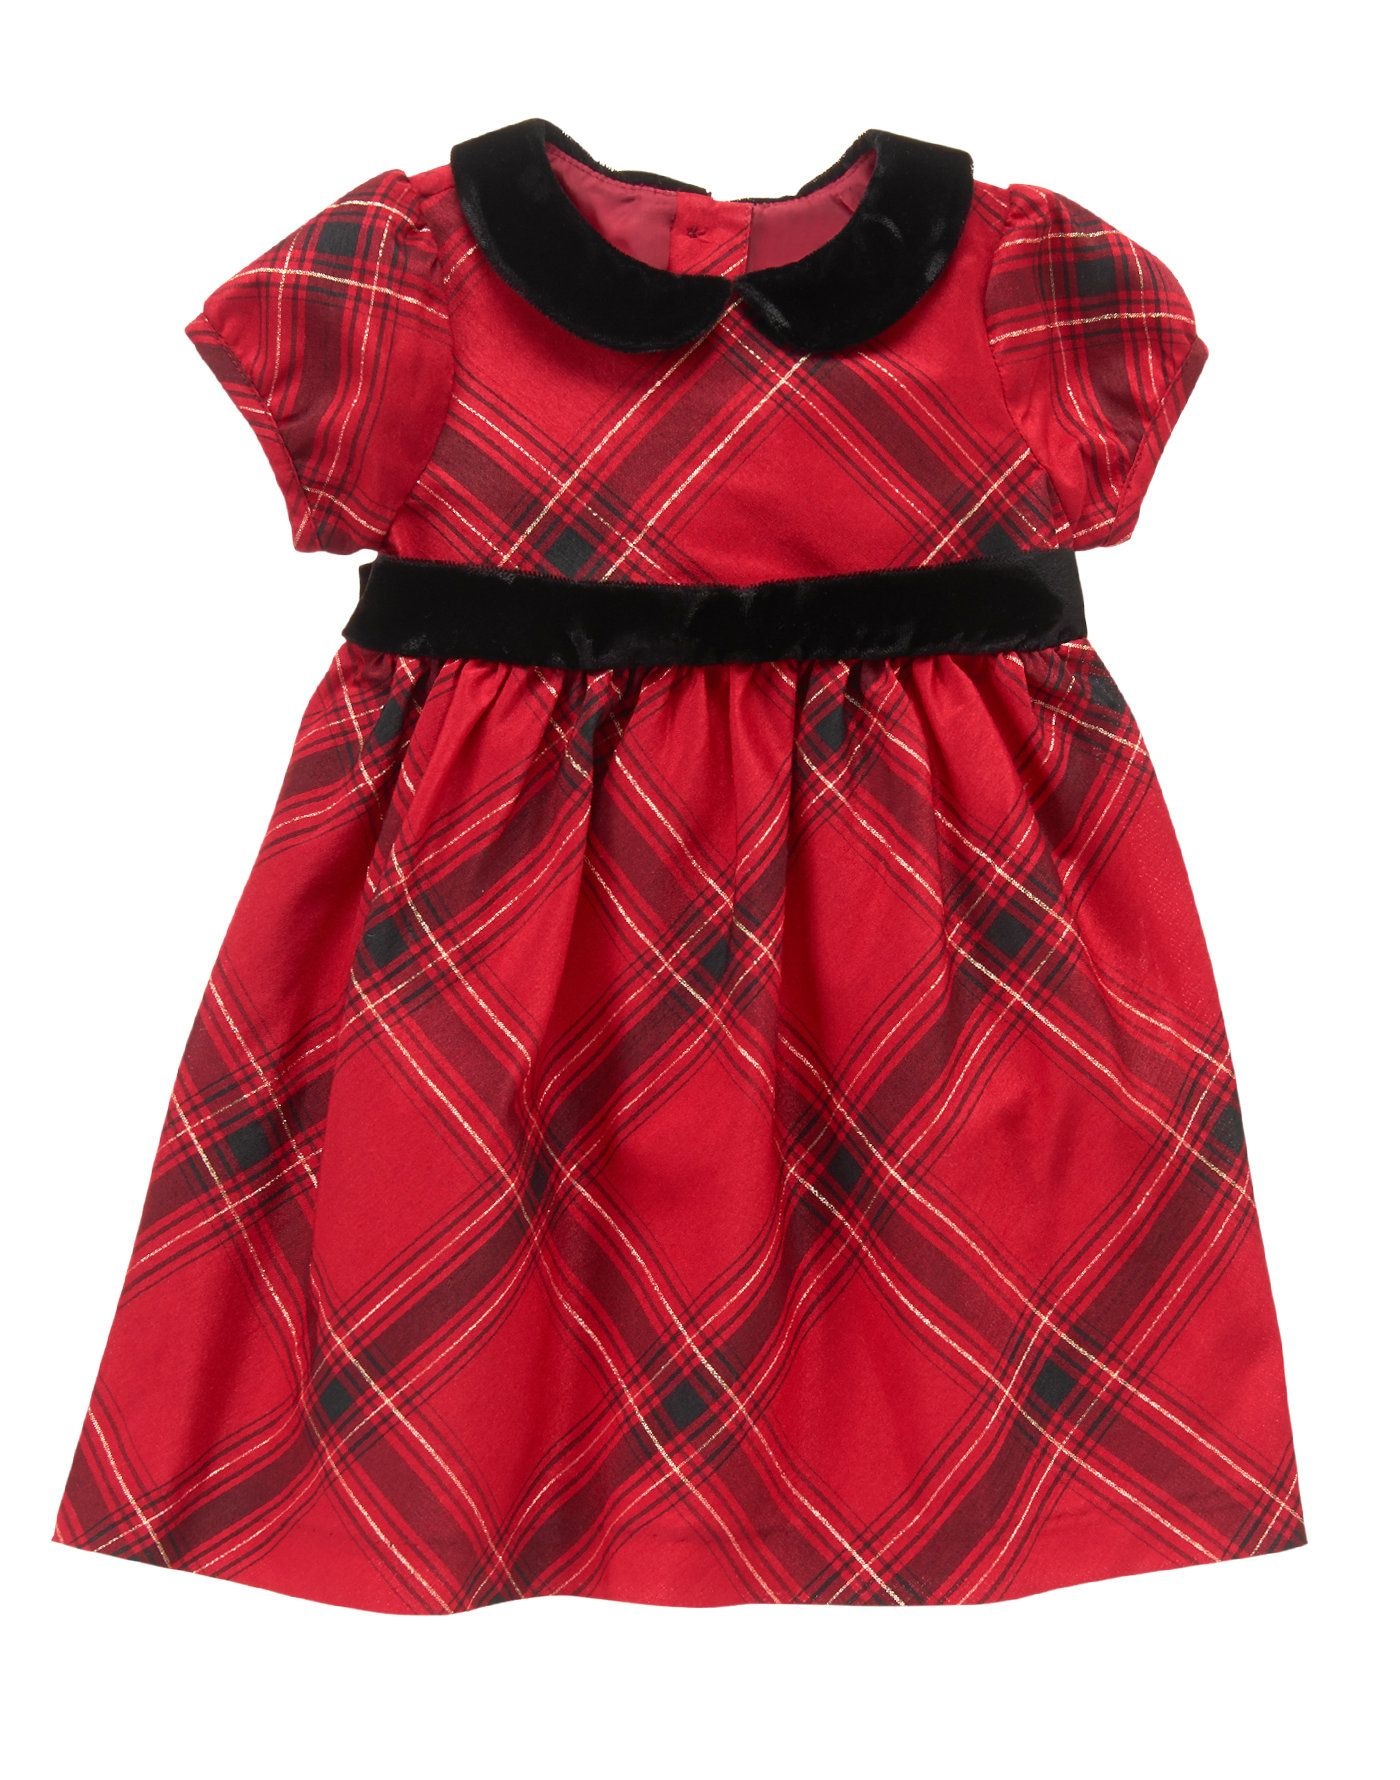 Butterfly wing dress kids pinterest baby royal gymboree and